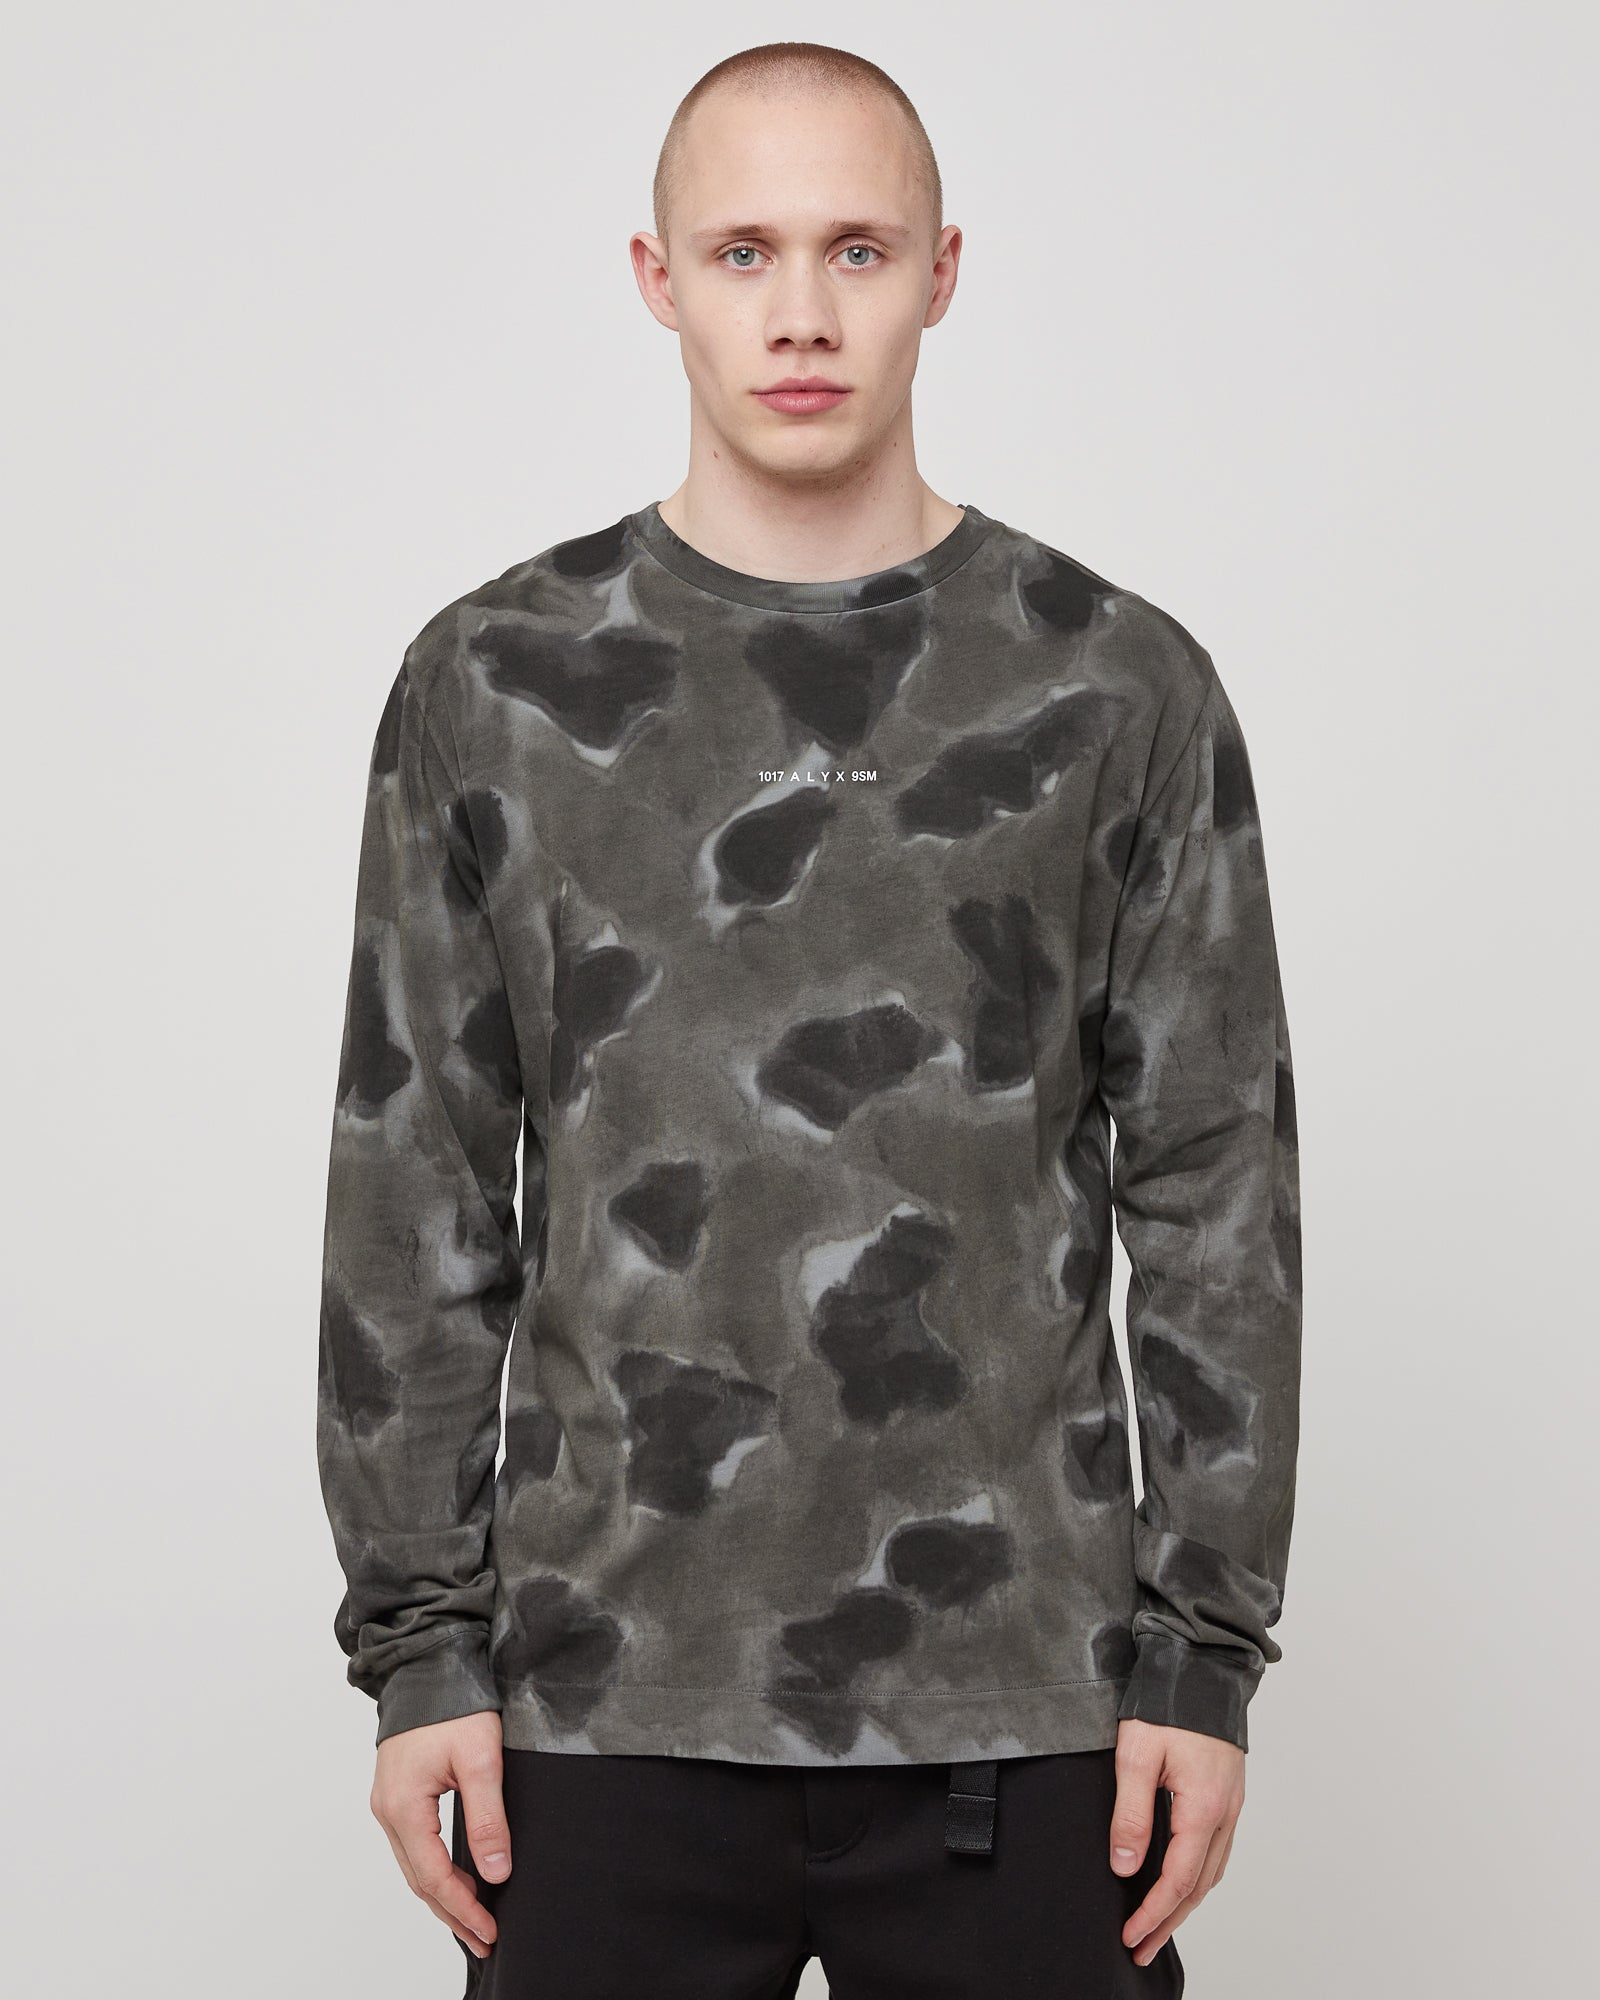 L/S A-Sphere T-Shirt in Black